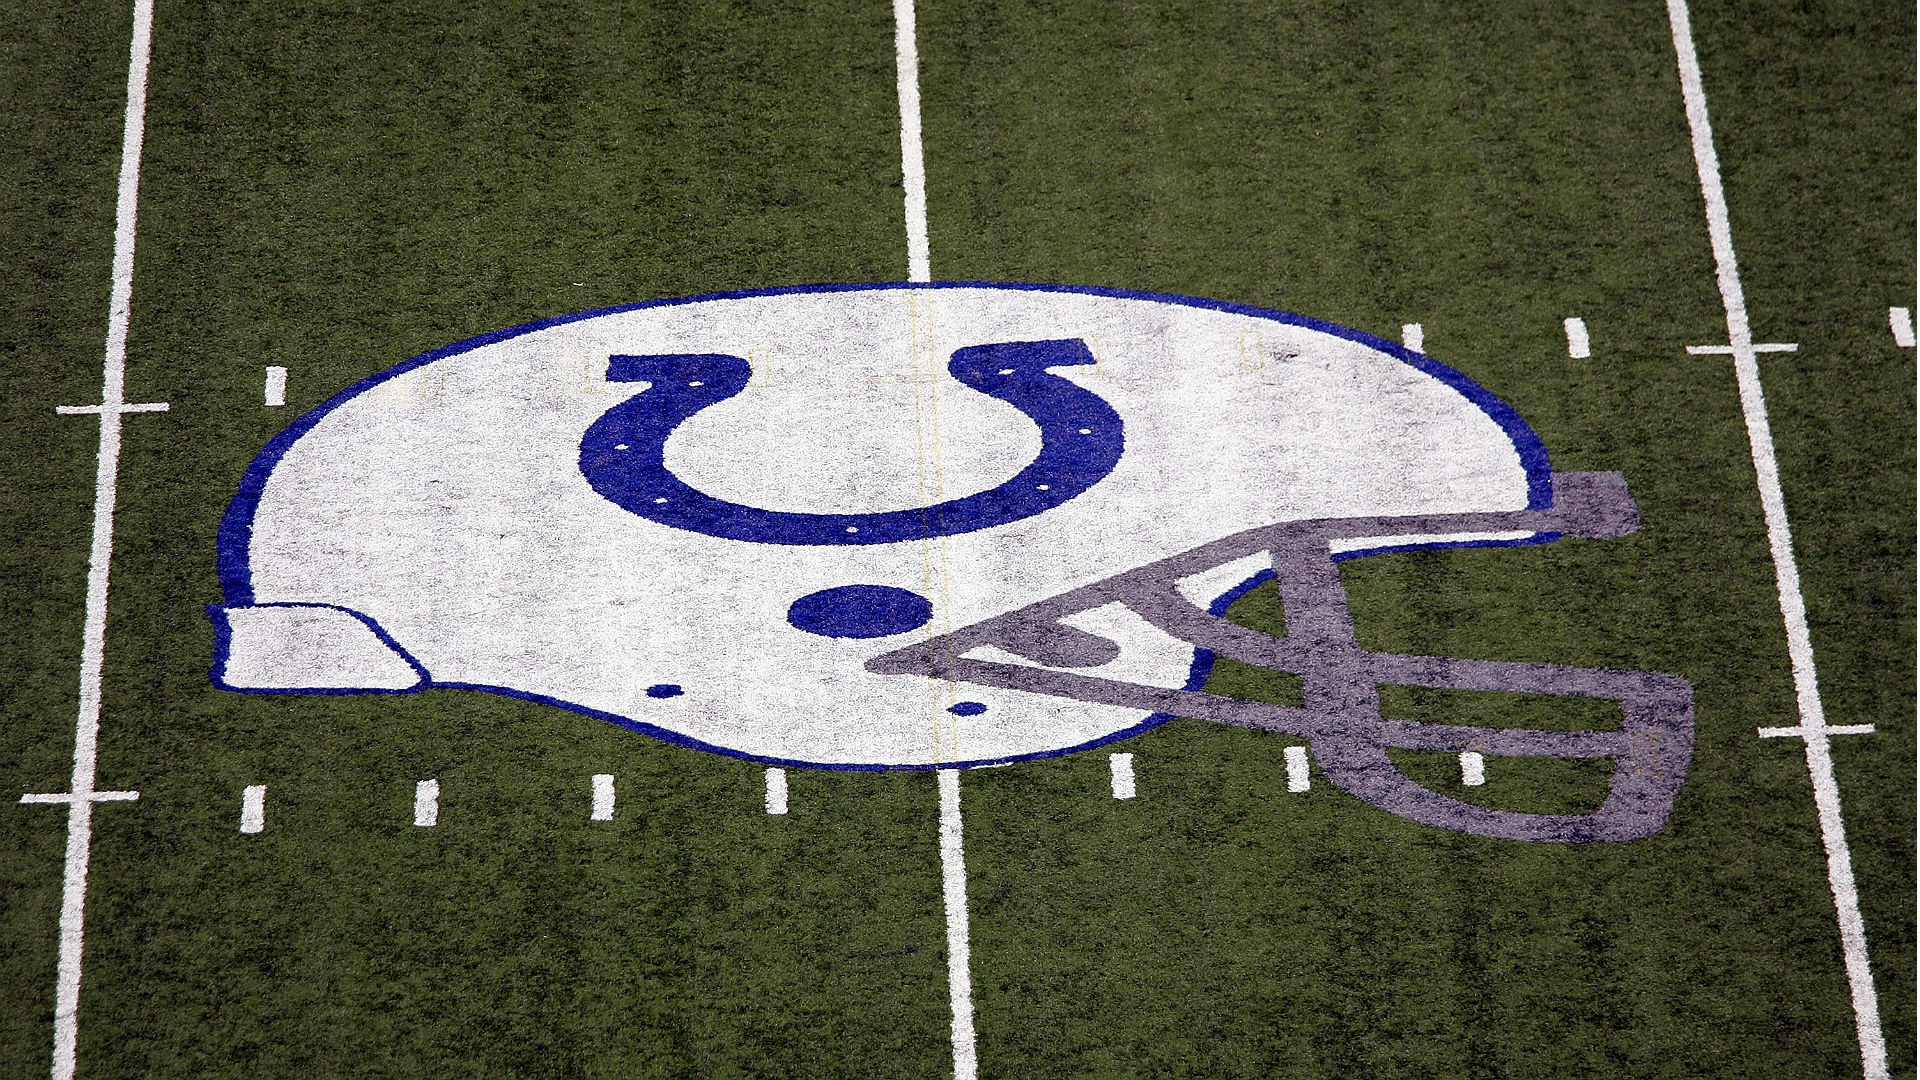 Former Saints safety Kenny Vaccaro visiting Colts